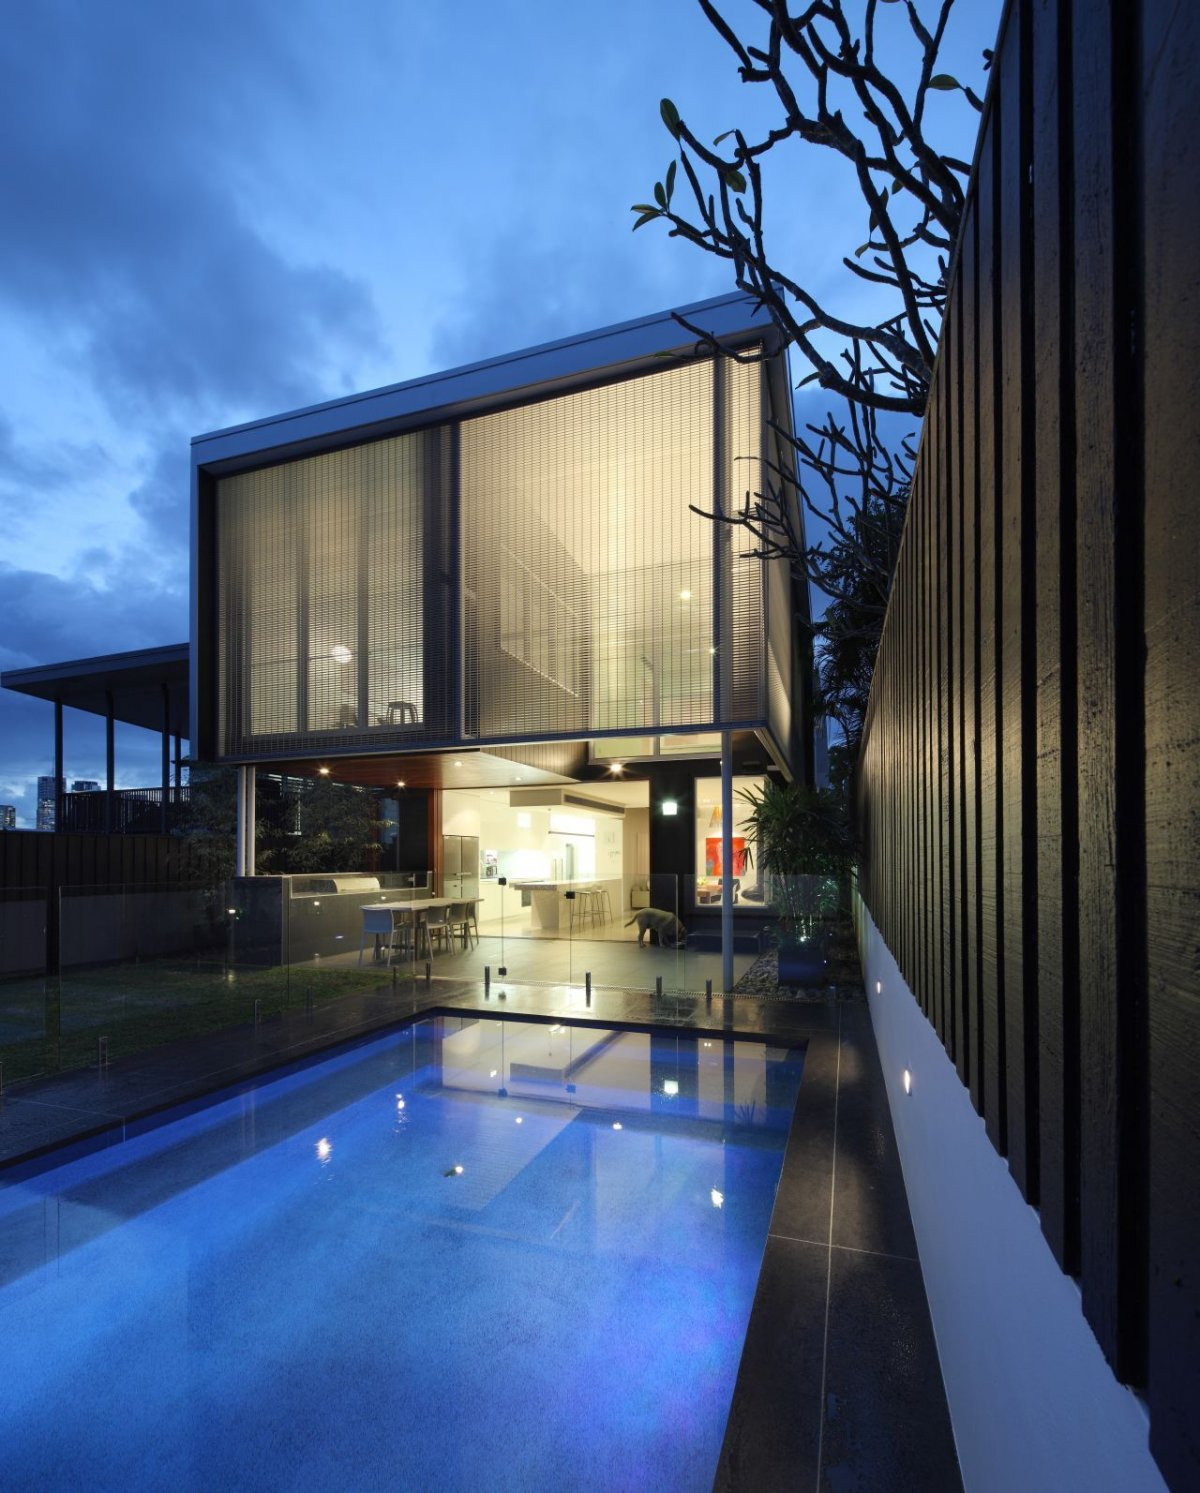 Swimming Pool, Lighting, Contemporary Family Home in Queensland, Australia